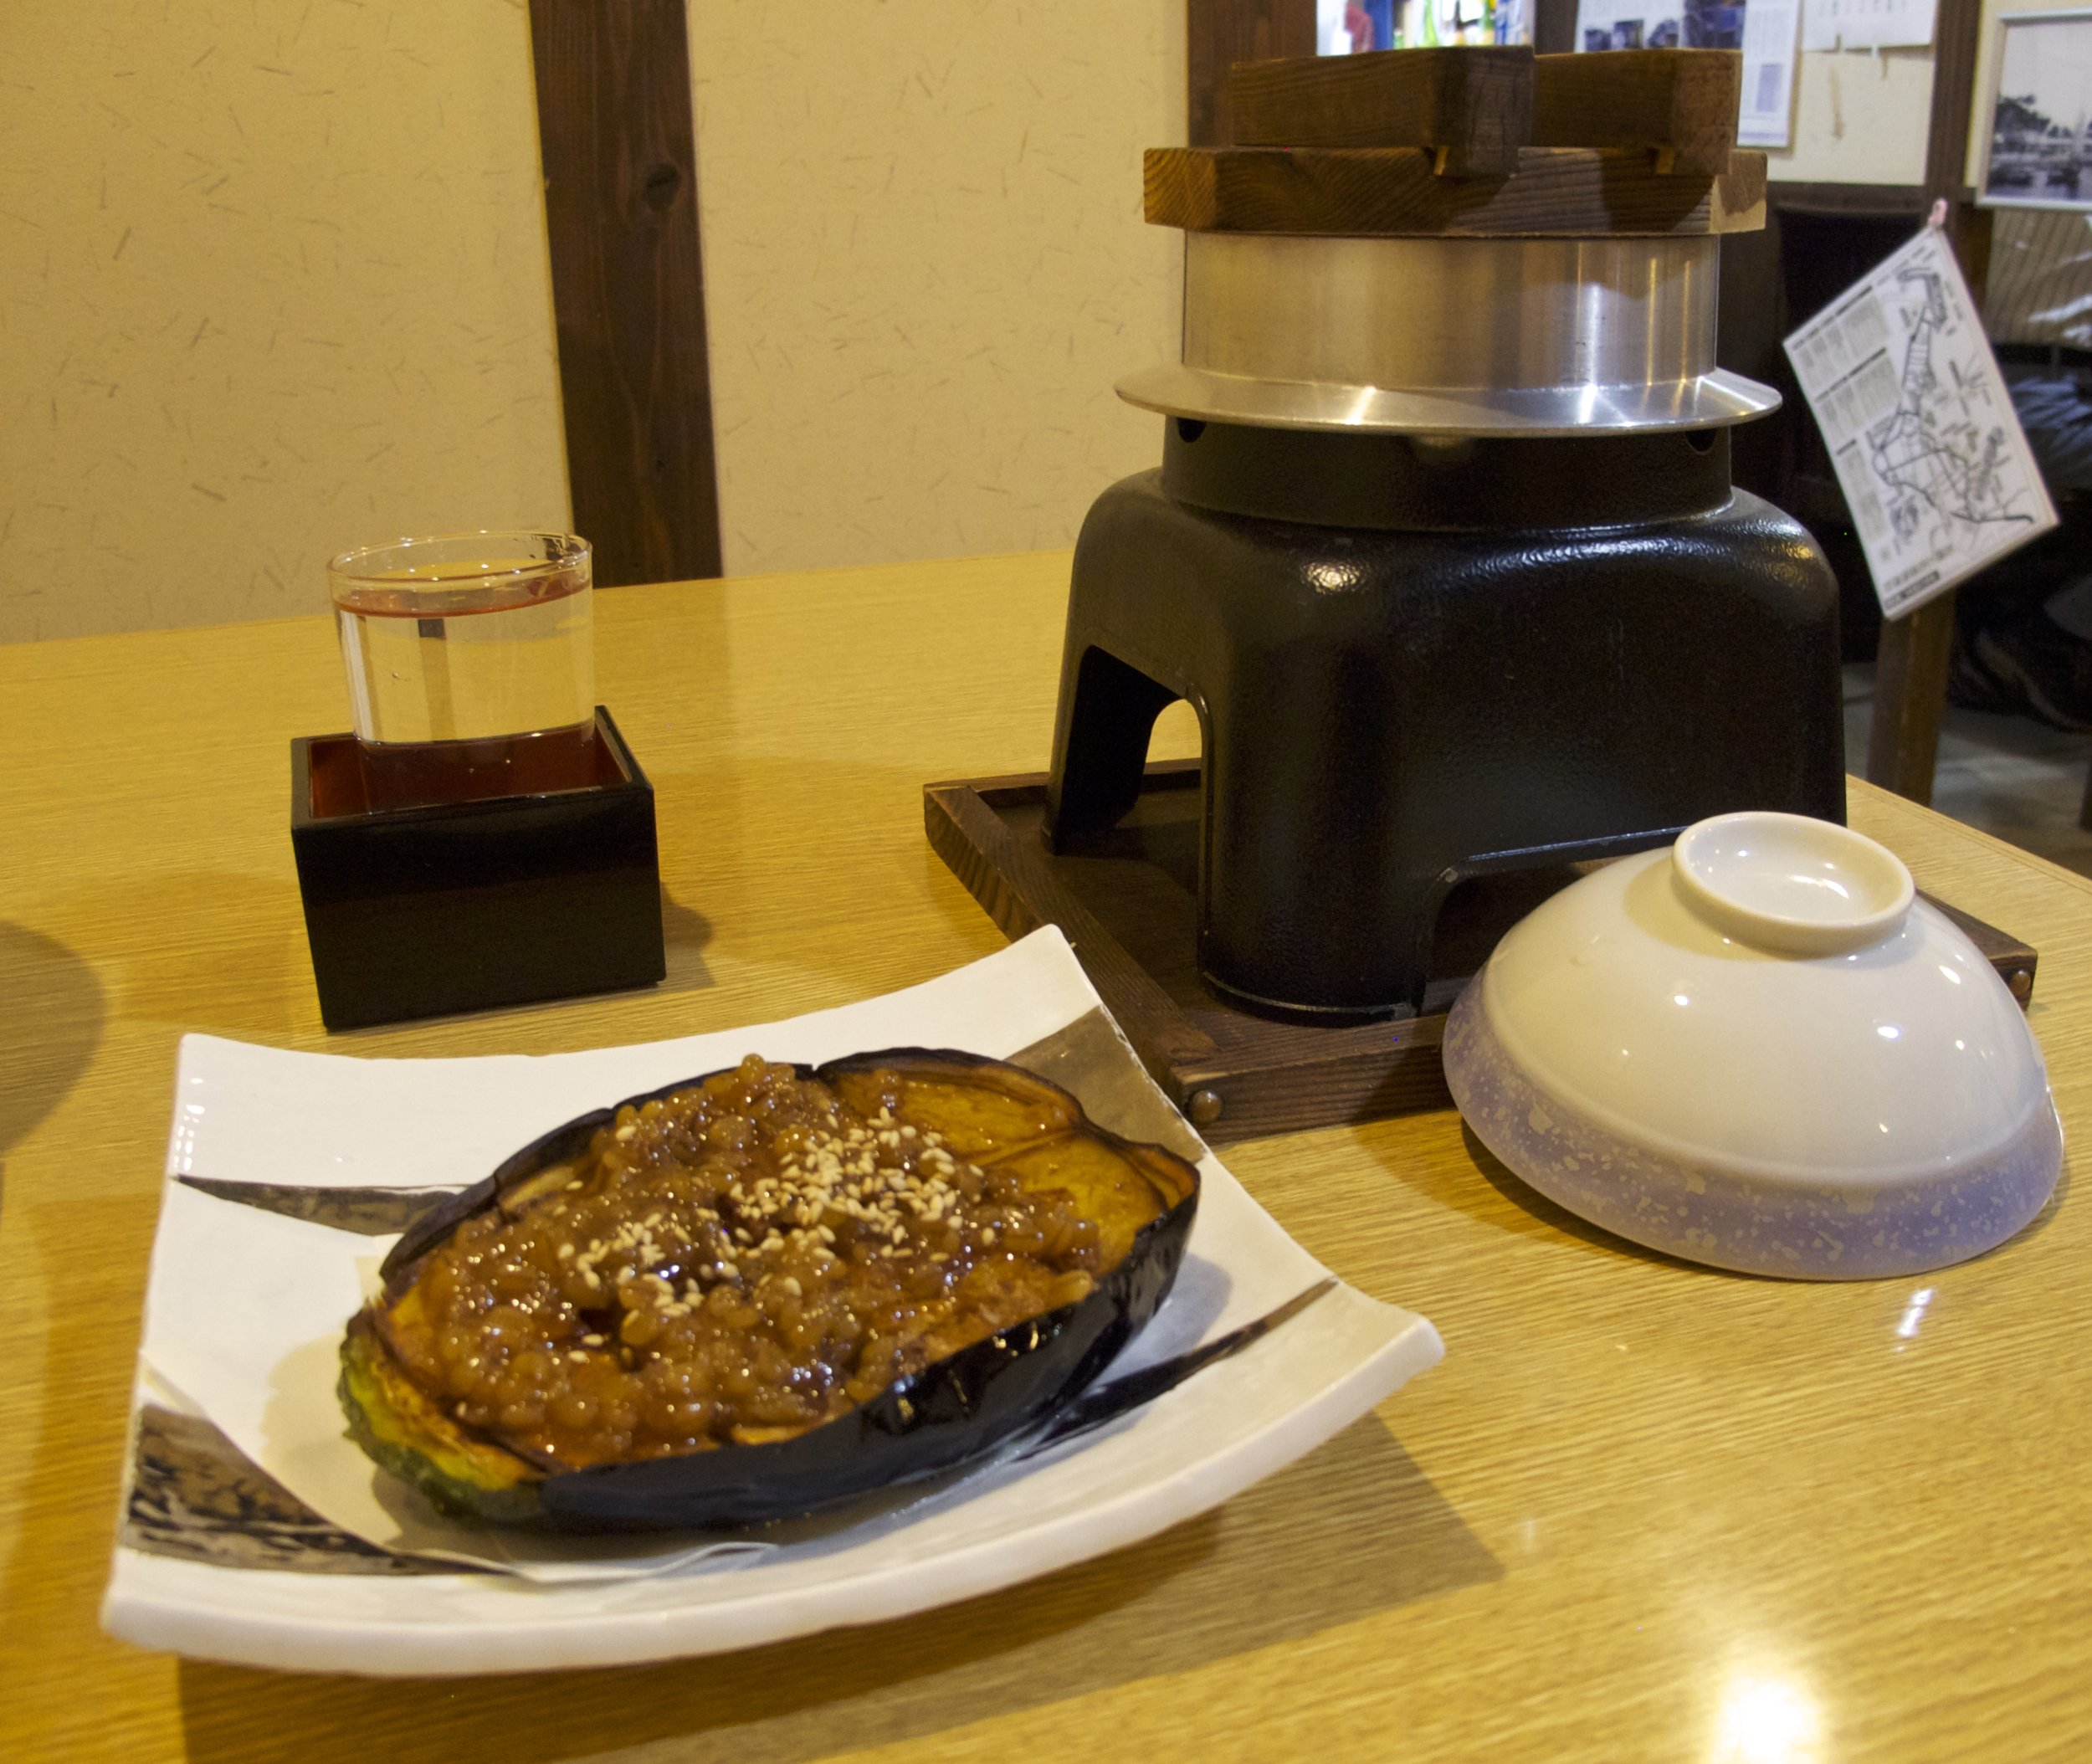 A glass of sake served alongside n asu dengaku , which is a roasted eggplant that has been glazed with a sauce made of sake, miso,  hon-mirin , and sugar. The sauce can also be used to glaze tofu, fish, and vegetables.